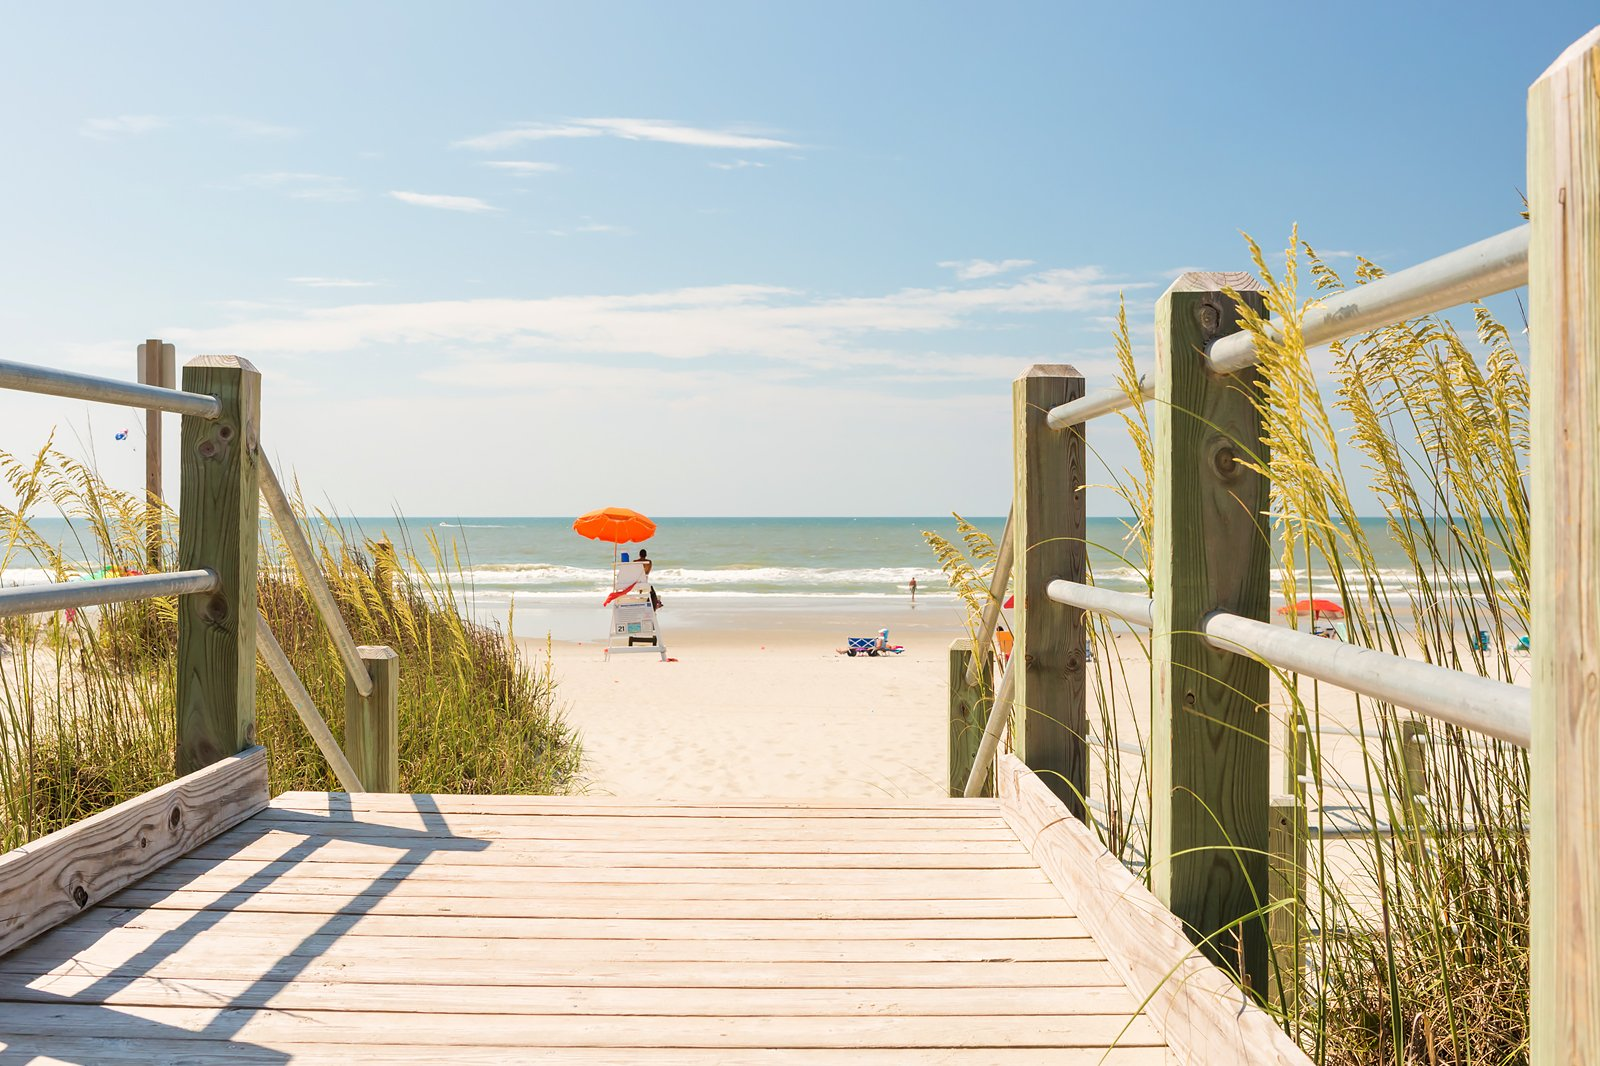 10 Best Things to Do in Myrtle Beach What Is Myrtle